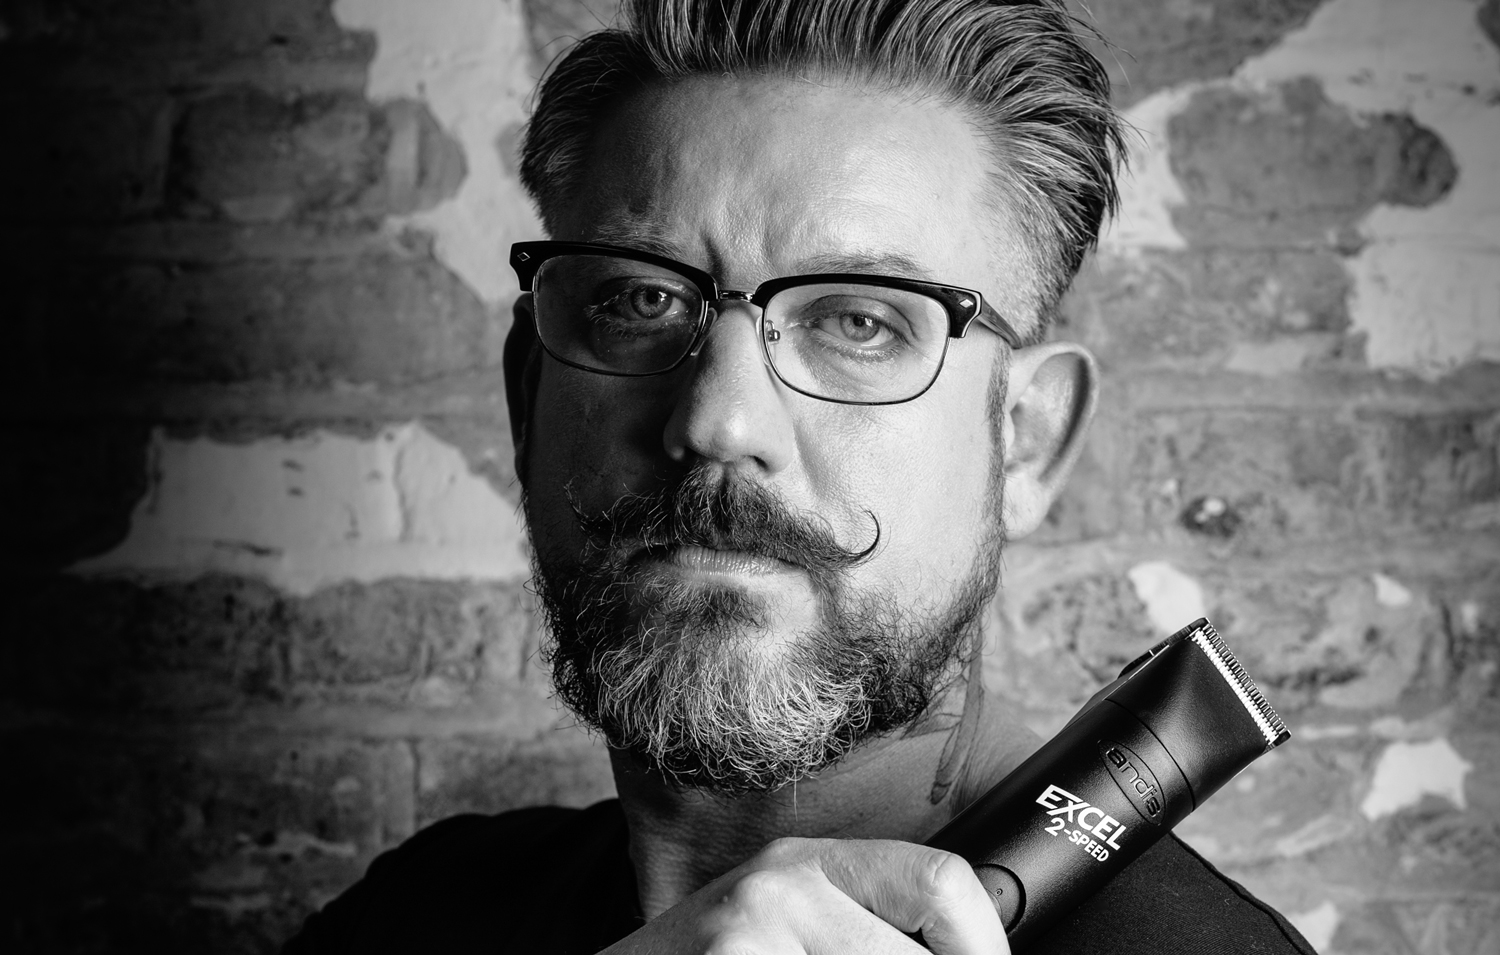 ANDIS COMPANY - Andis is the USA's leading manufacturer of hand held tools for barbers and stylists. VIViD has successfully managed its UK PR, provided support at major UK and European shows and developed new and exciting collaborations to elevate its profile.